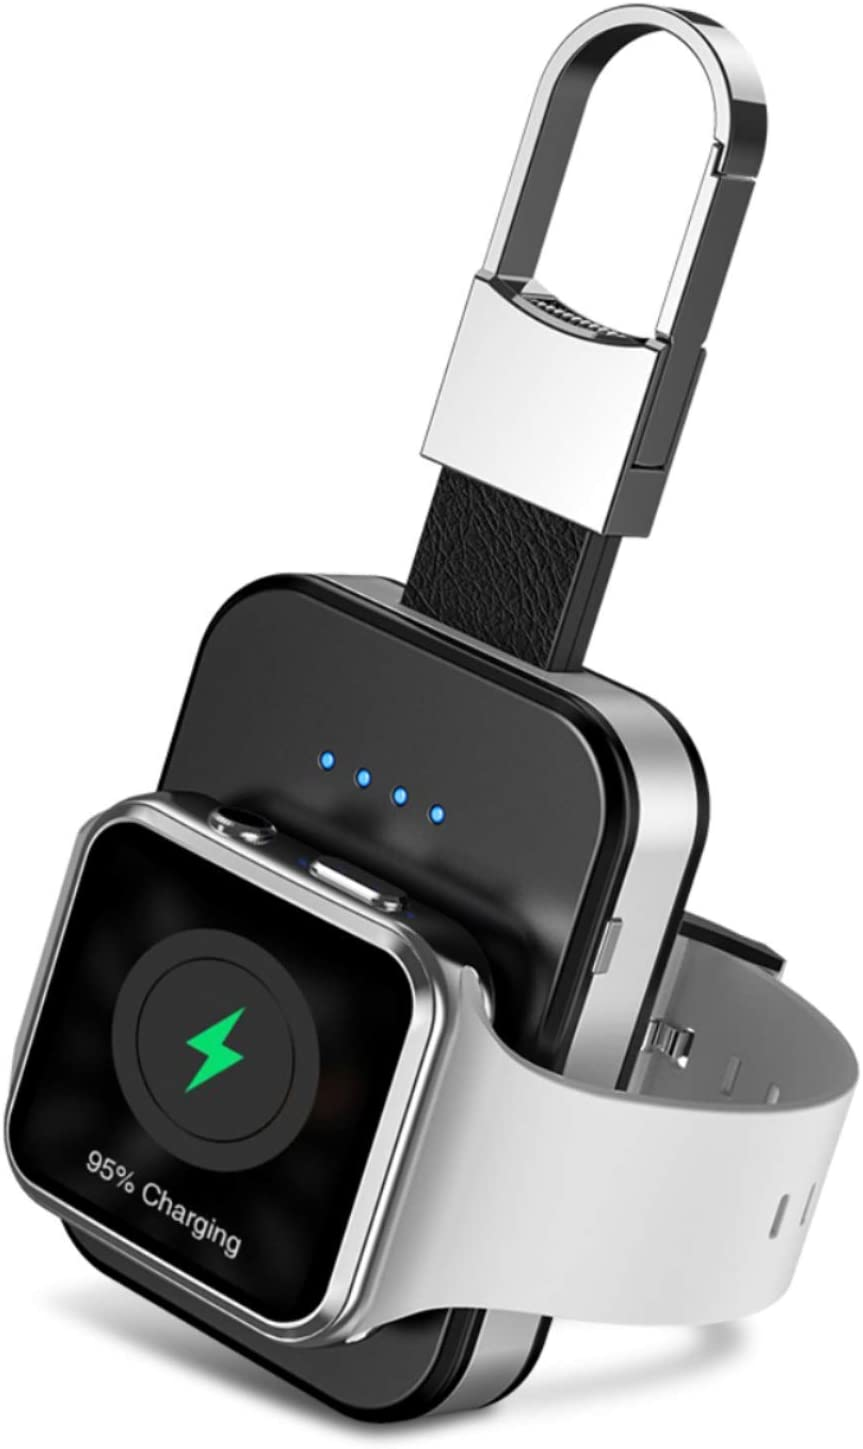 RéveRévem Portable Wireless Charger for Apple Watch, [Apple Certified for Apple Watch Series 5/4/3/2/1 - MFI Certified] Keychain Power Bank, Watch Charger for Travel - Built in 1000mAh